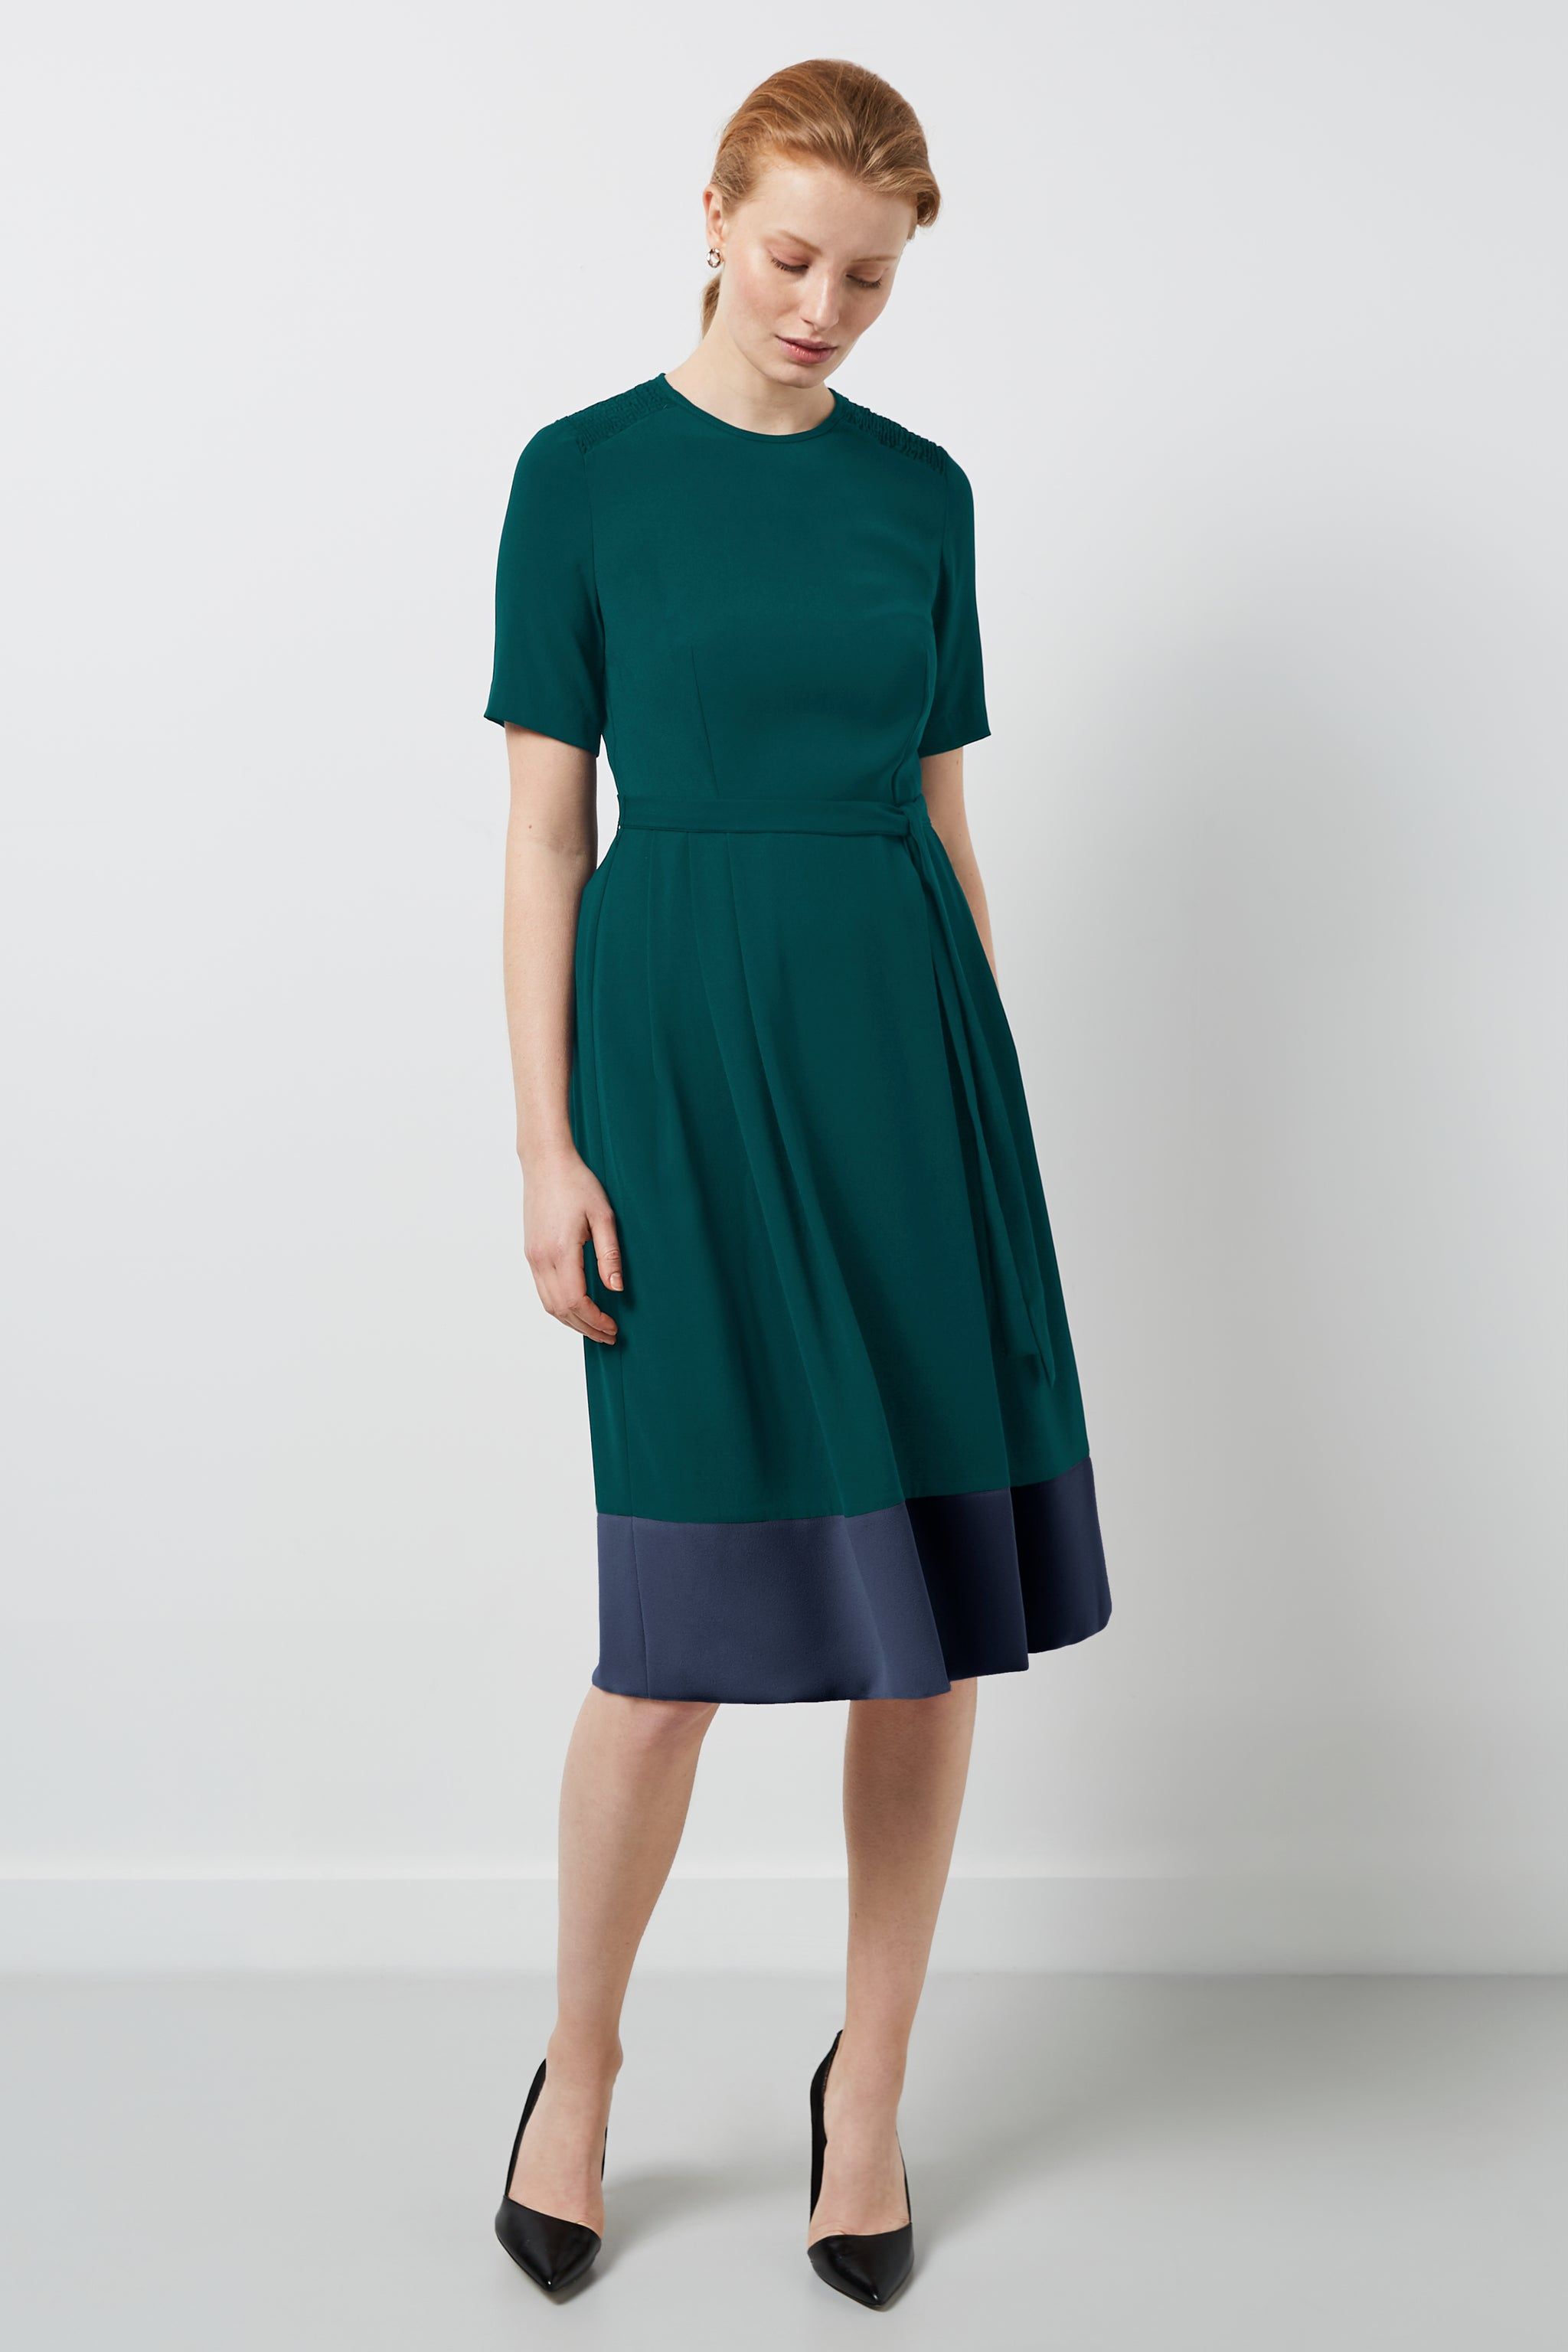 Norfolk Green and Navy Dress